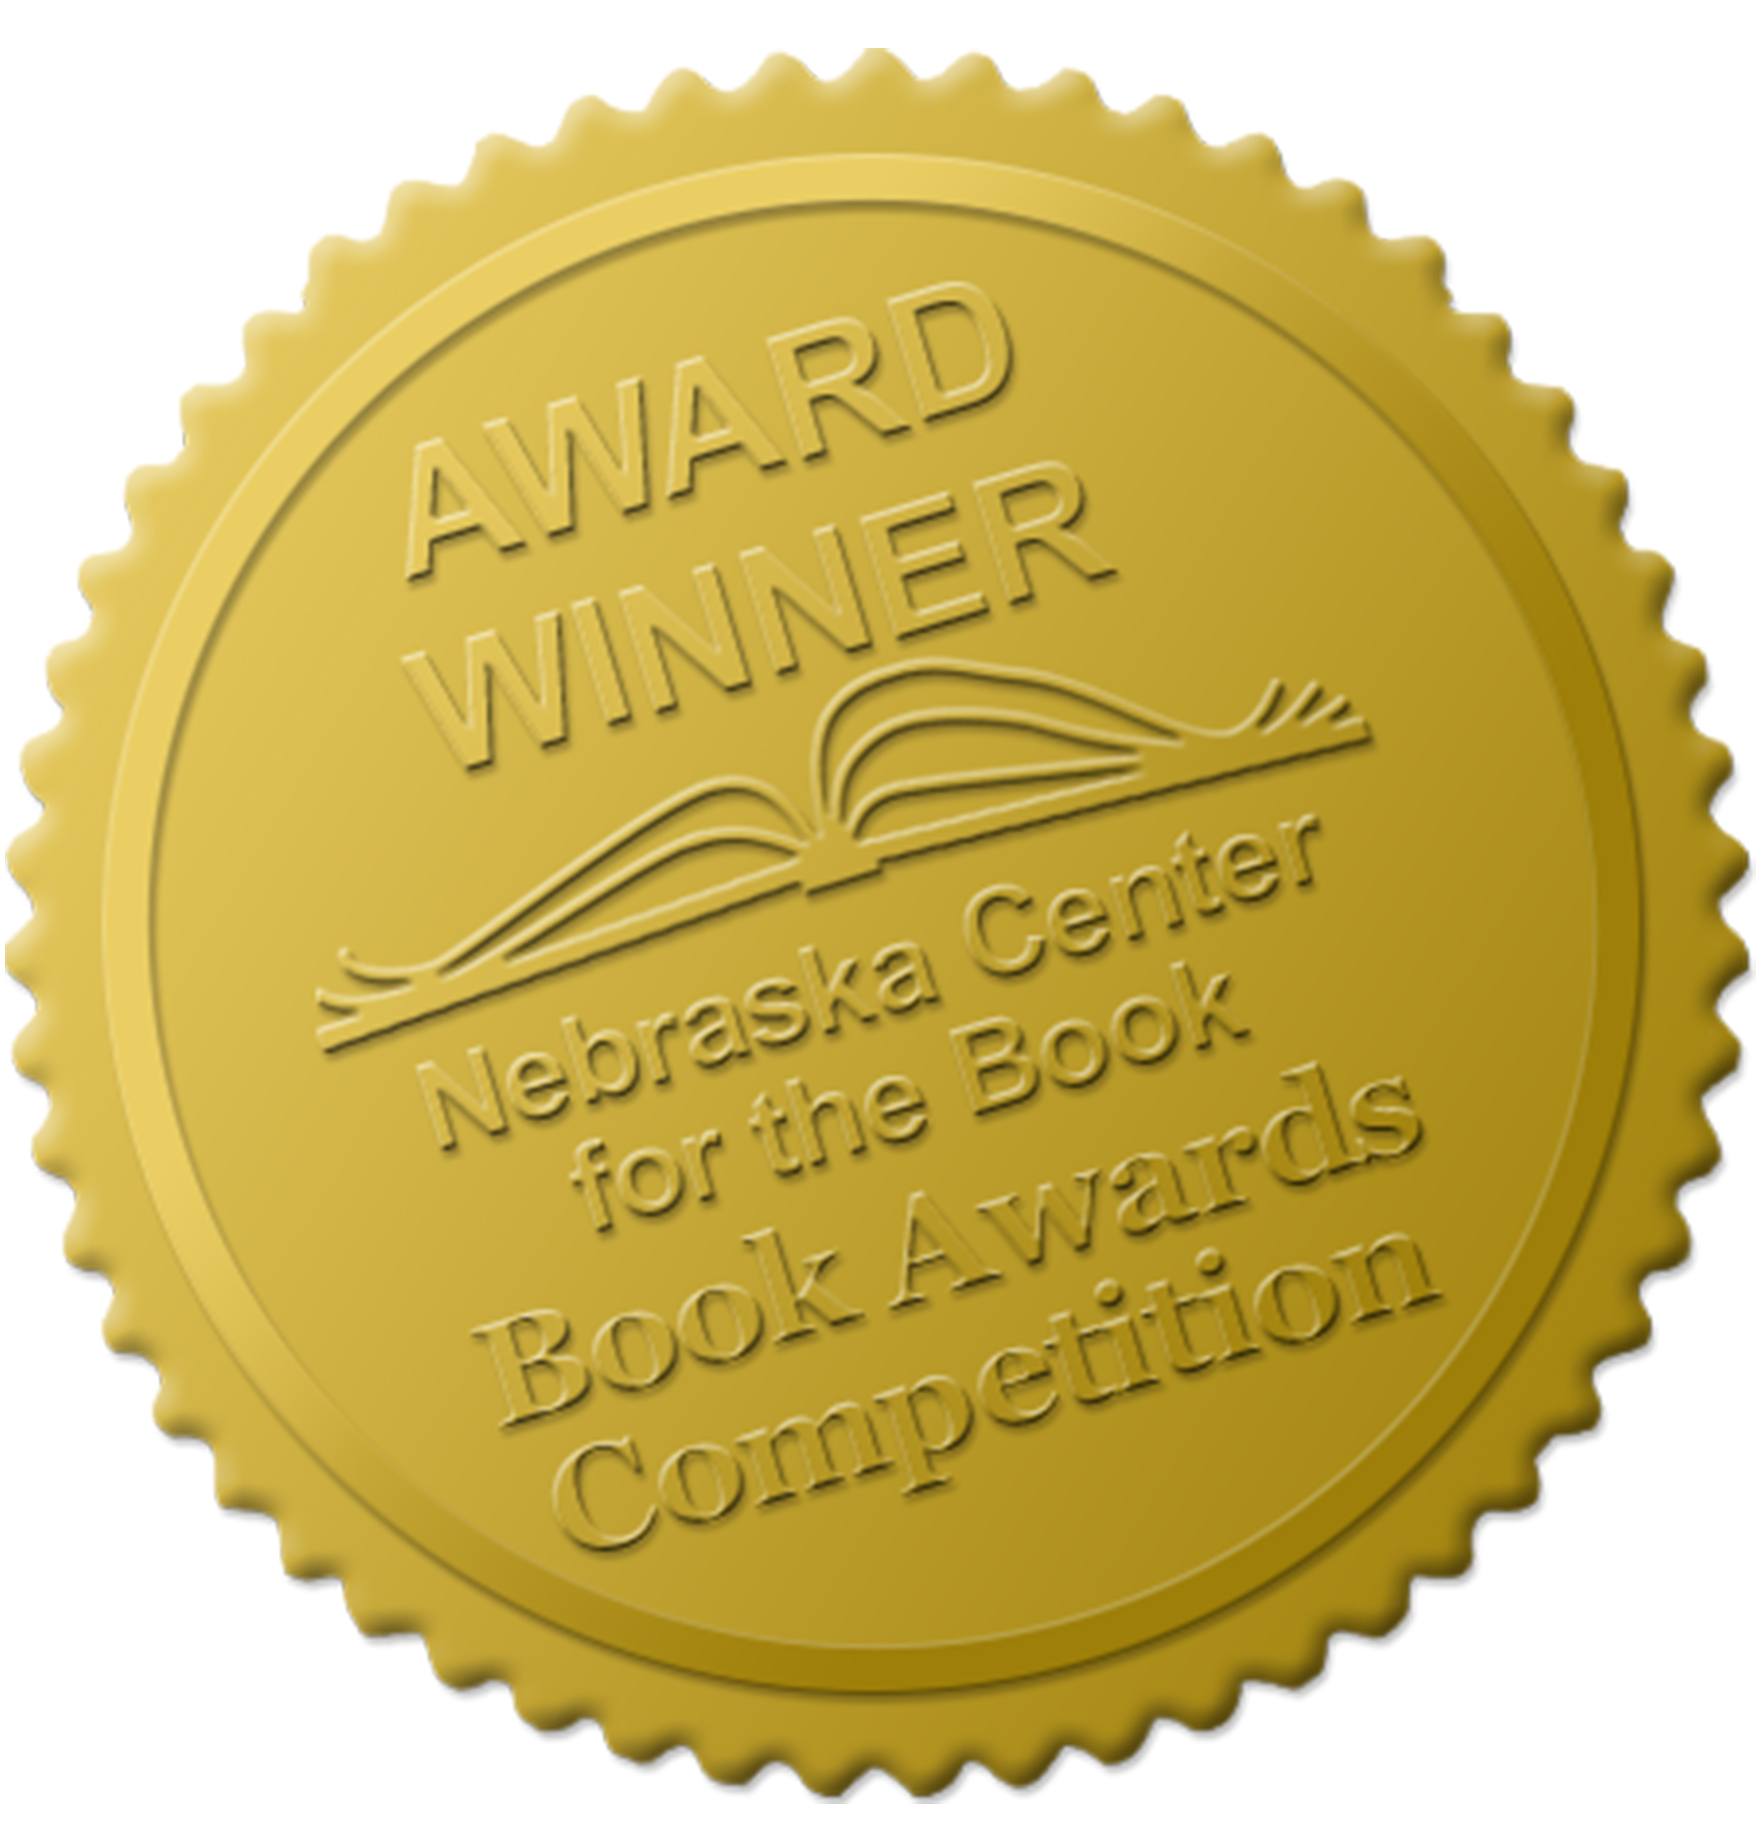 NEBRASKA BOOK AWARD | BEST FICTION | ALEX KAVA | STRANDED and LOST CREED